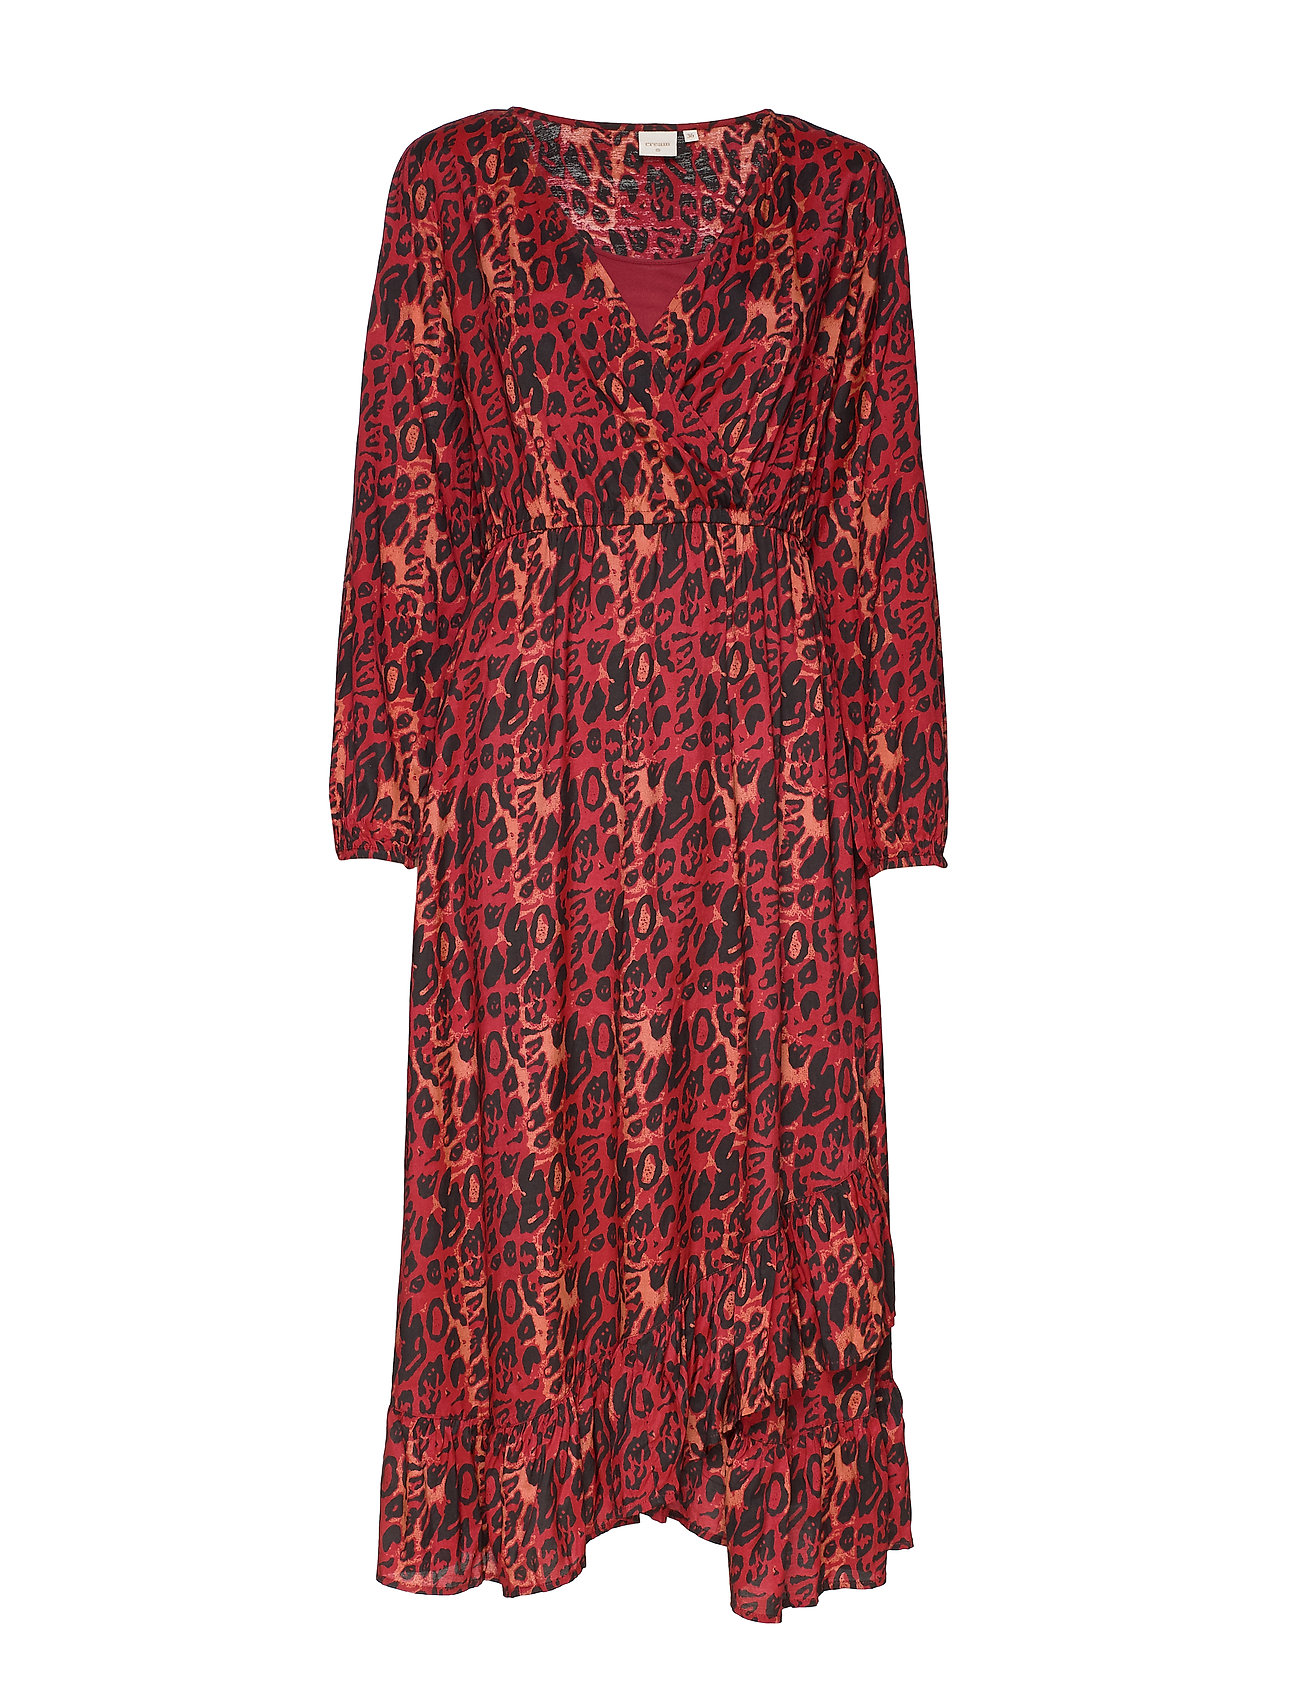 Cream IsleyCR Dress - MERLOT RED